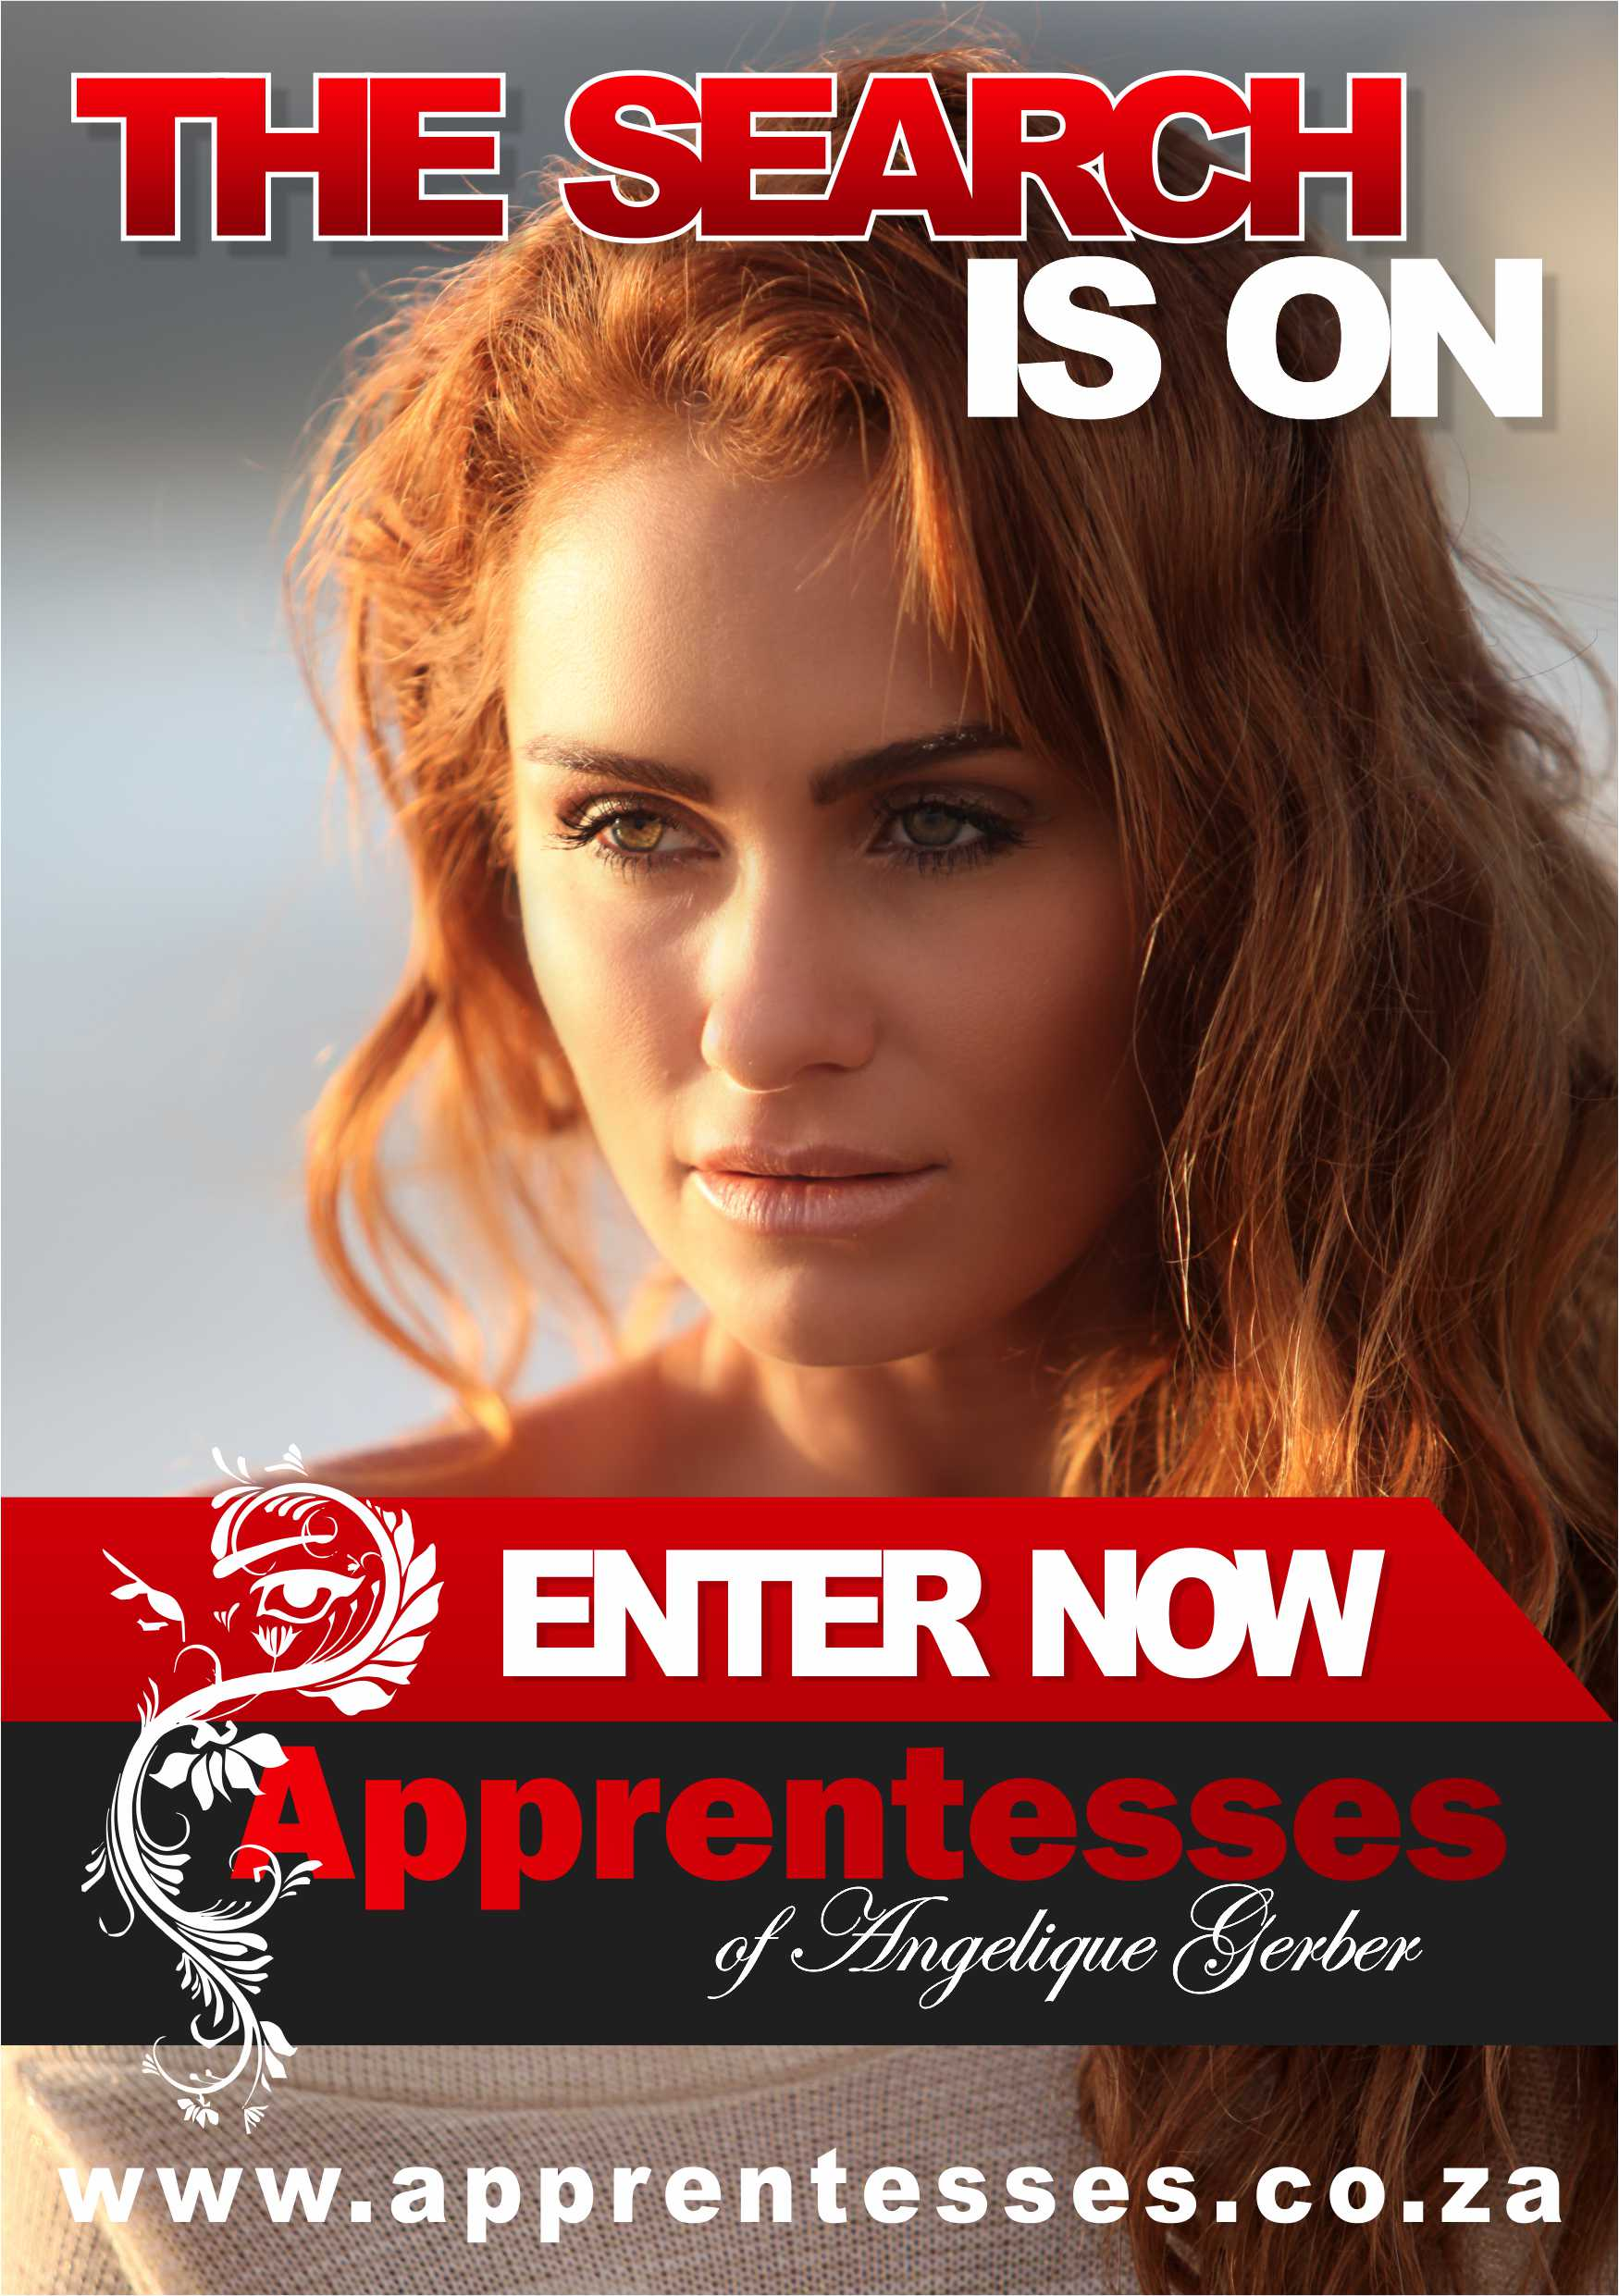 Peri-Peri-Creative-Apprentesses-of-Angelique-Gerber A5 Advert Small_1